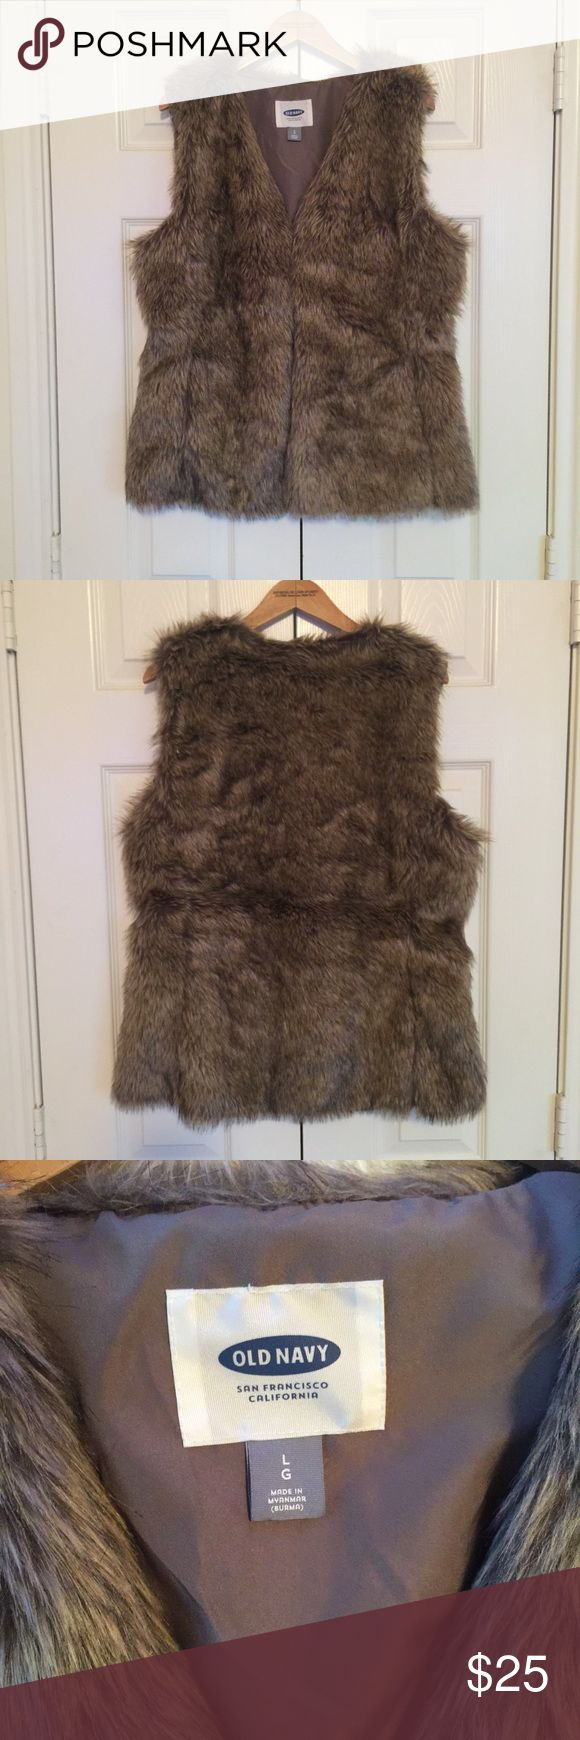 Old Navy Faux Fur Vest Old Navy faux fur vest. Only worn once. In great condition. Very cute. Great for fall. Old Navy Jackets & Coats Vests